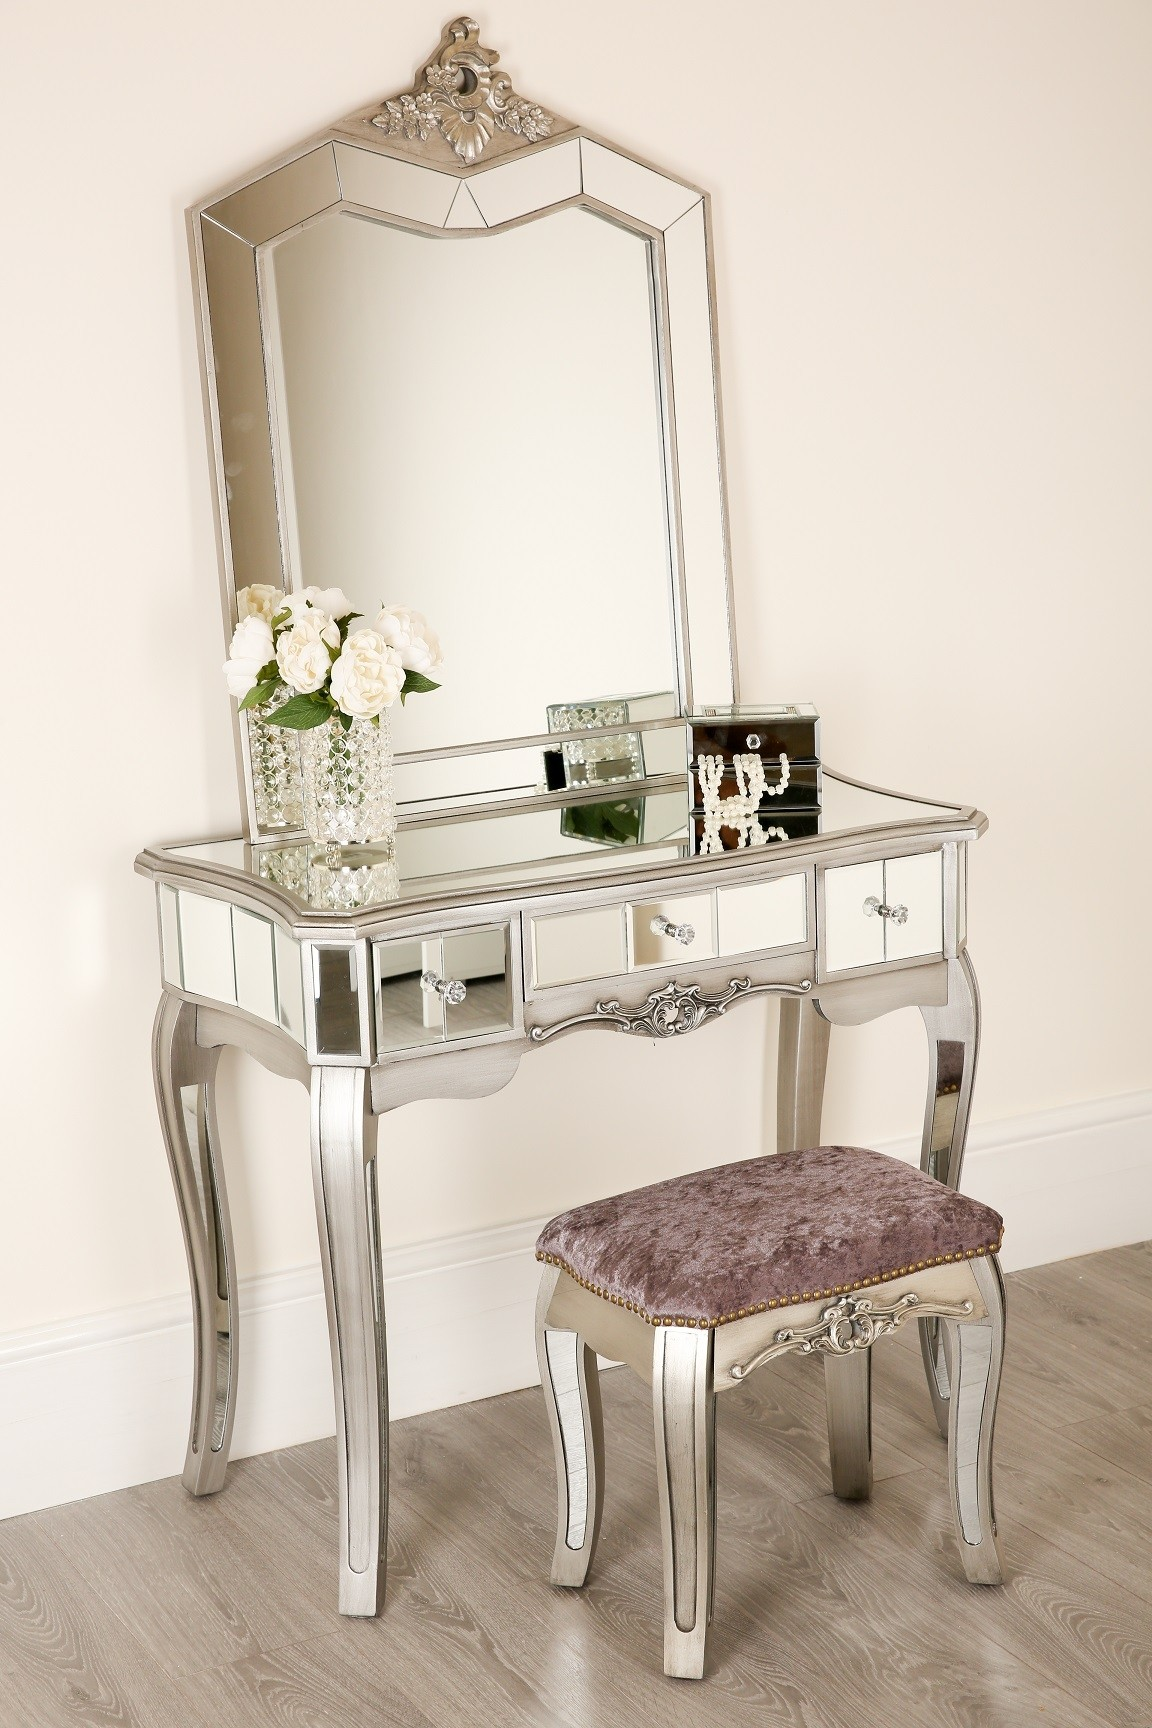 Dressing Table Chairs And Stools: Mirrored Dressing Table Mirror 1 Drawer And Stool Bedroom